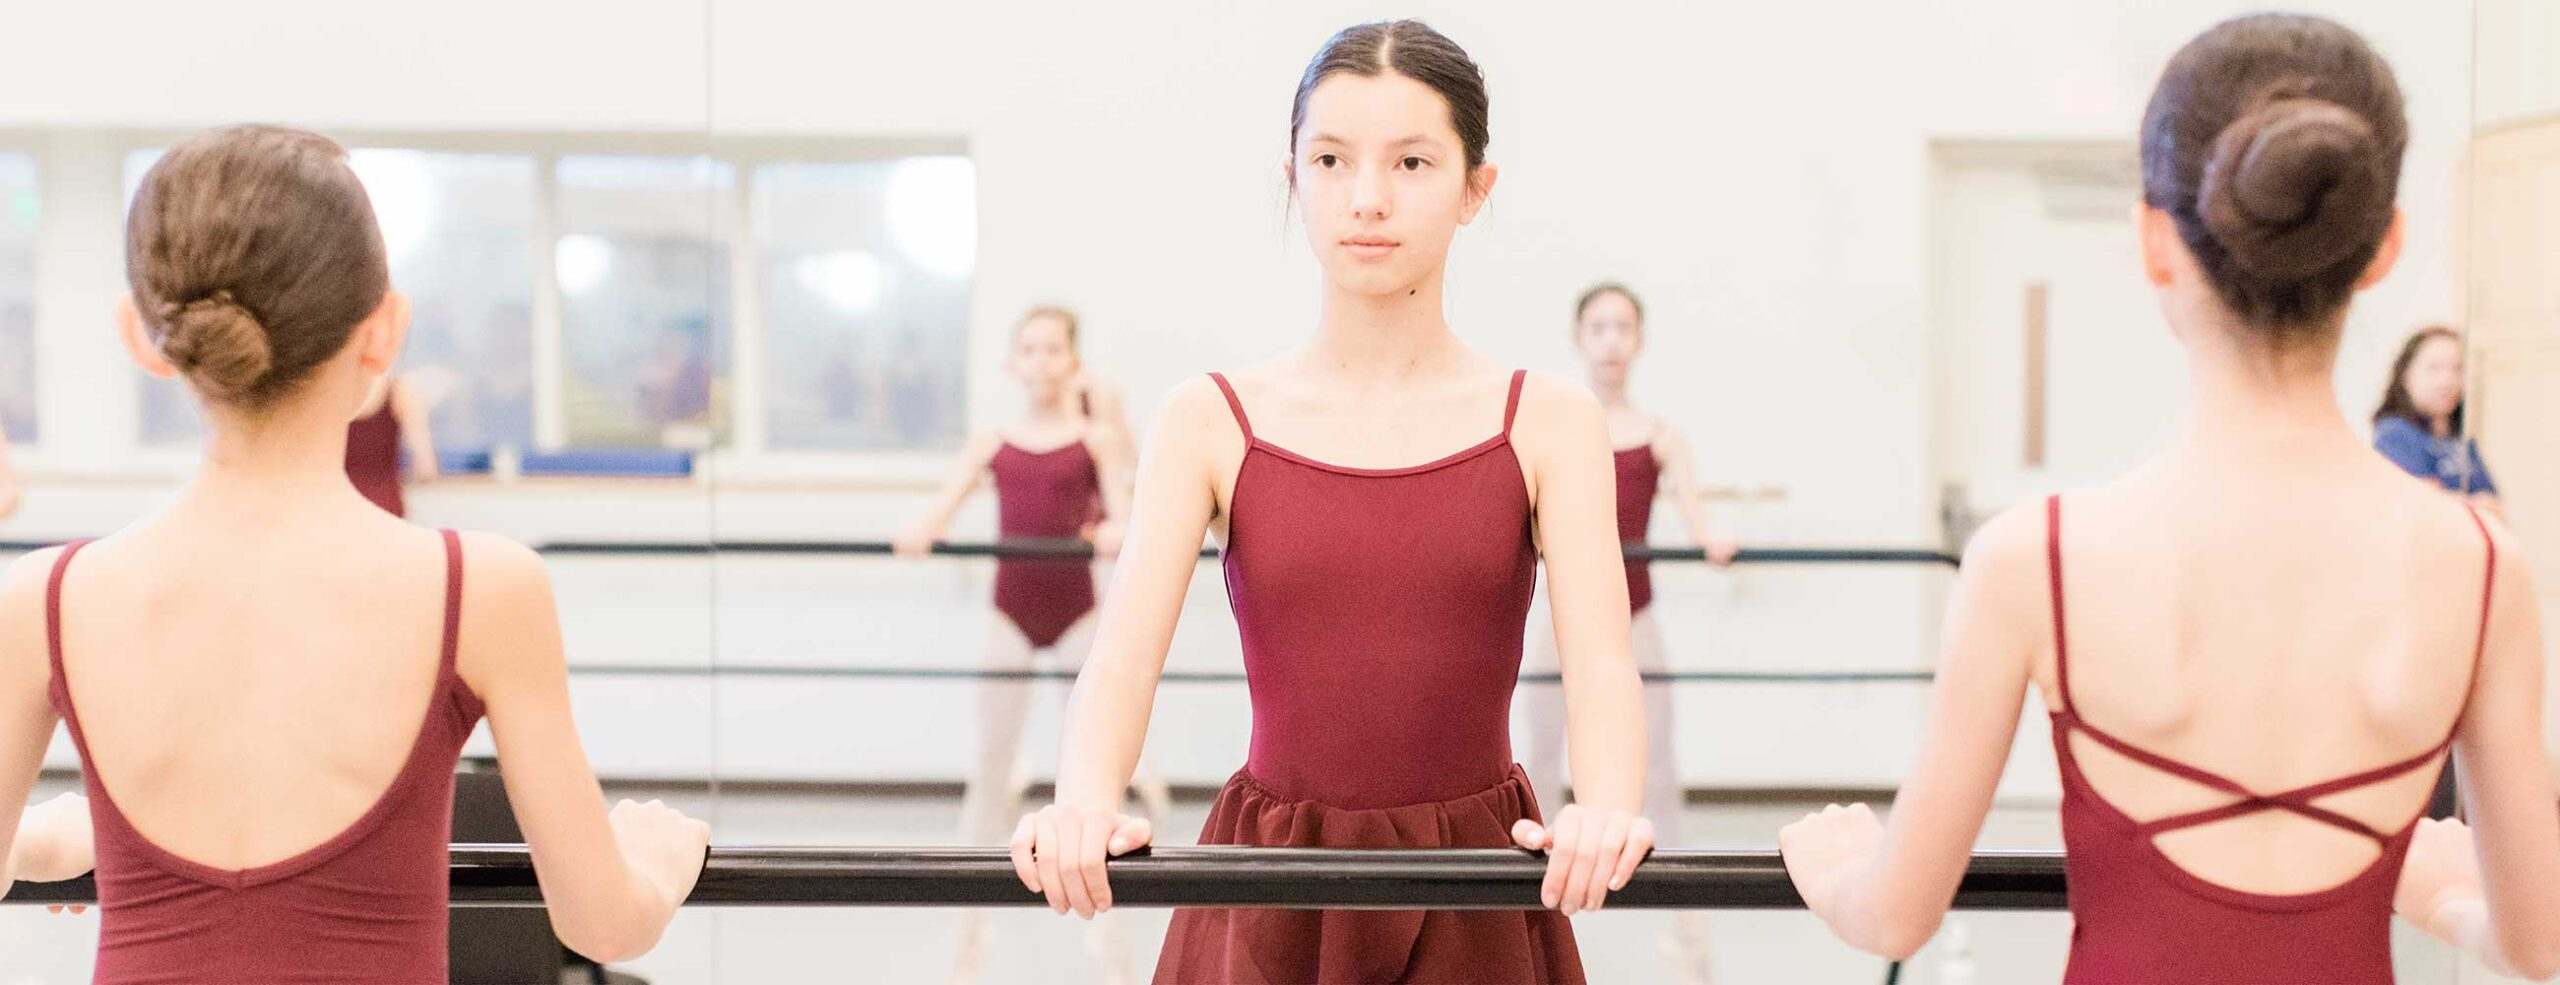 Ballet students standing at barre